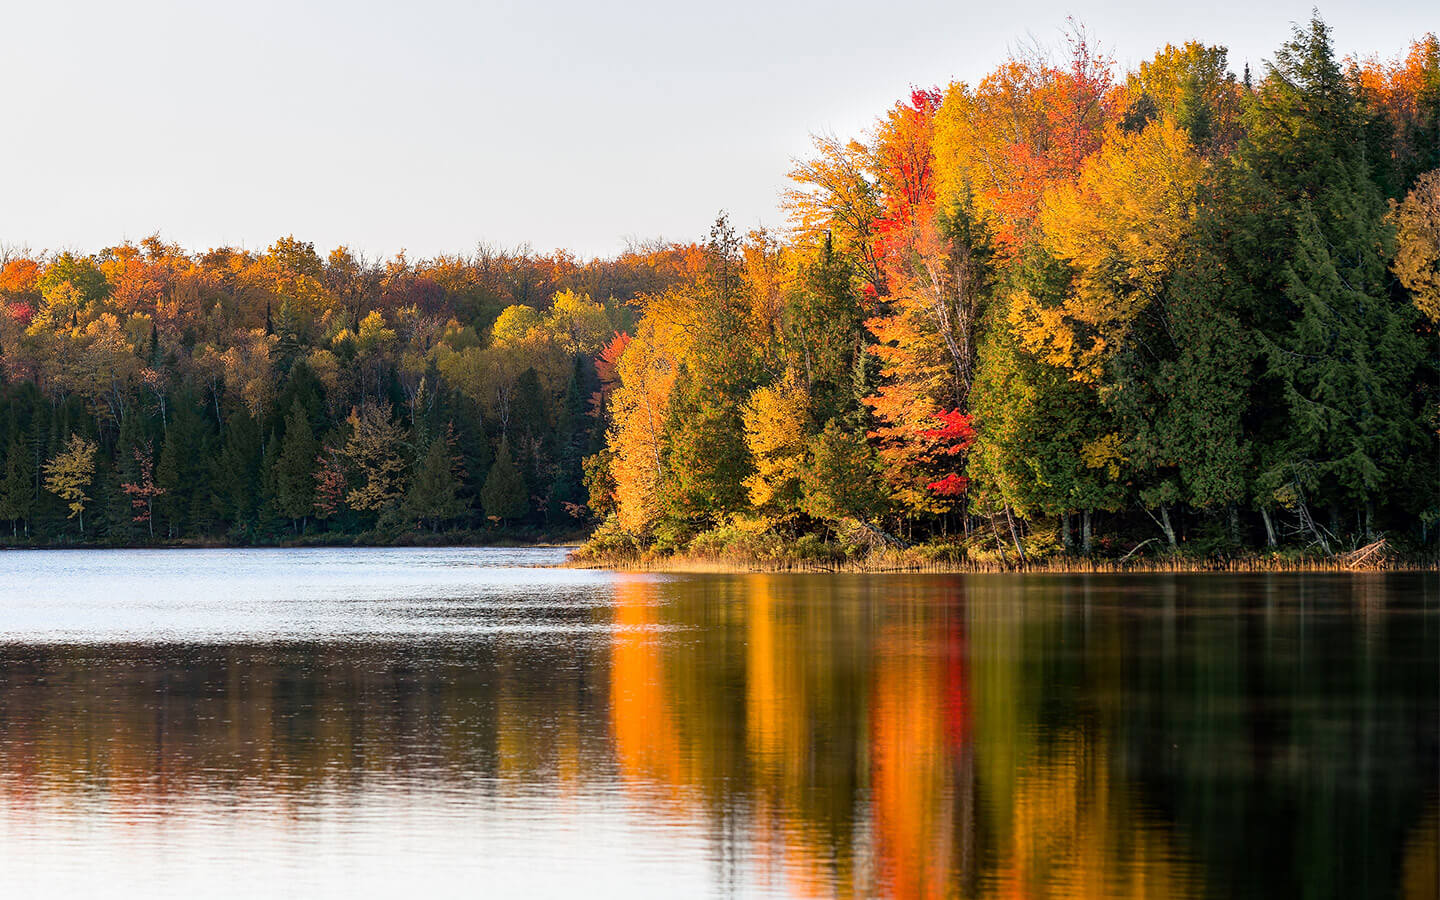 Lake with trees around it during the fall